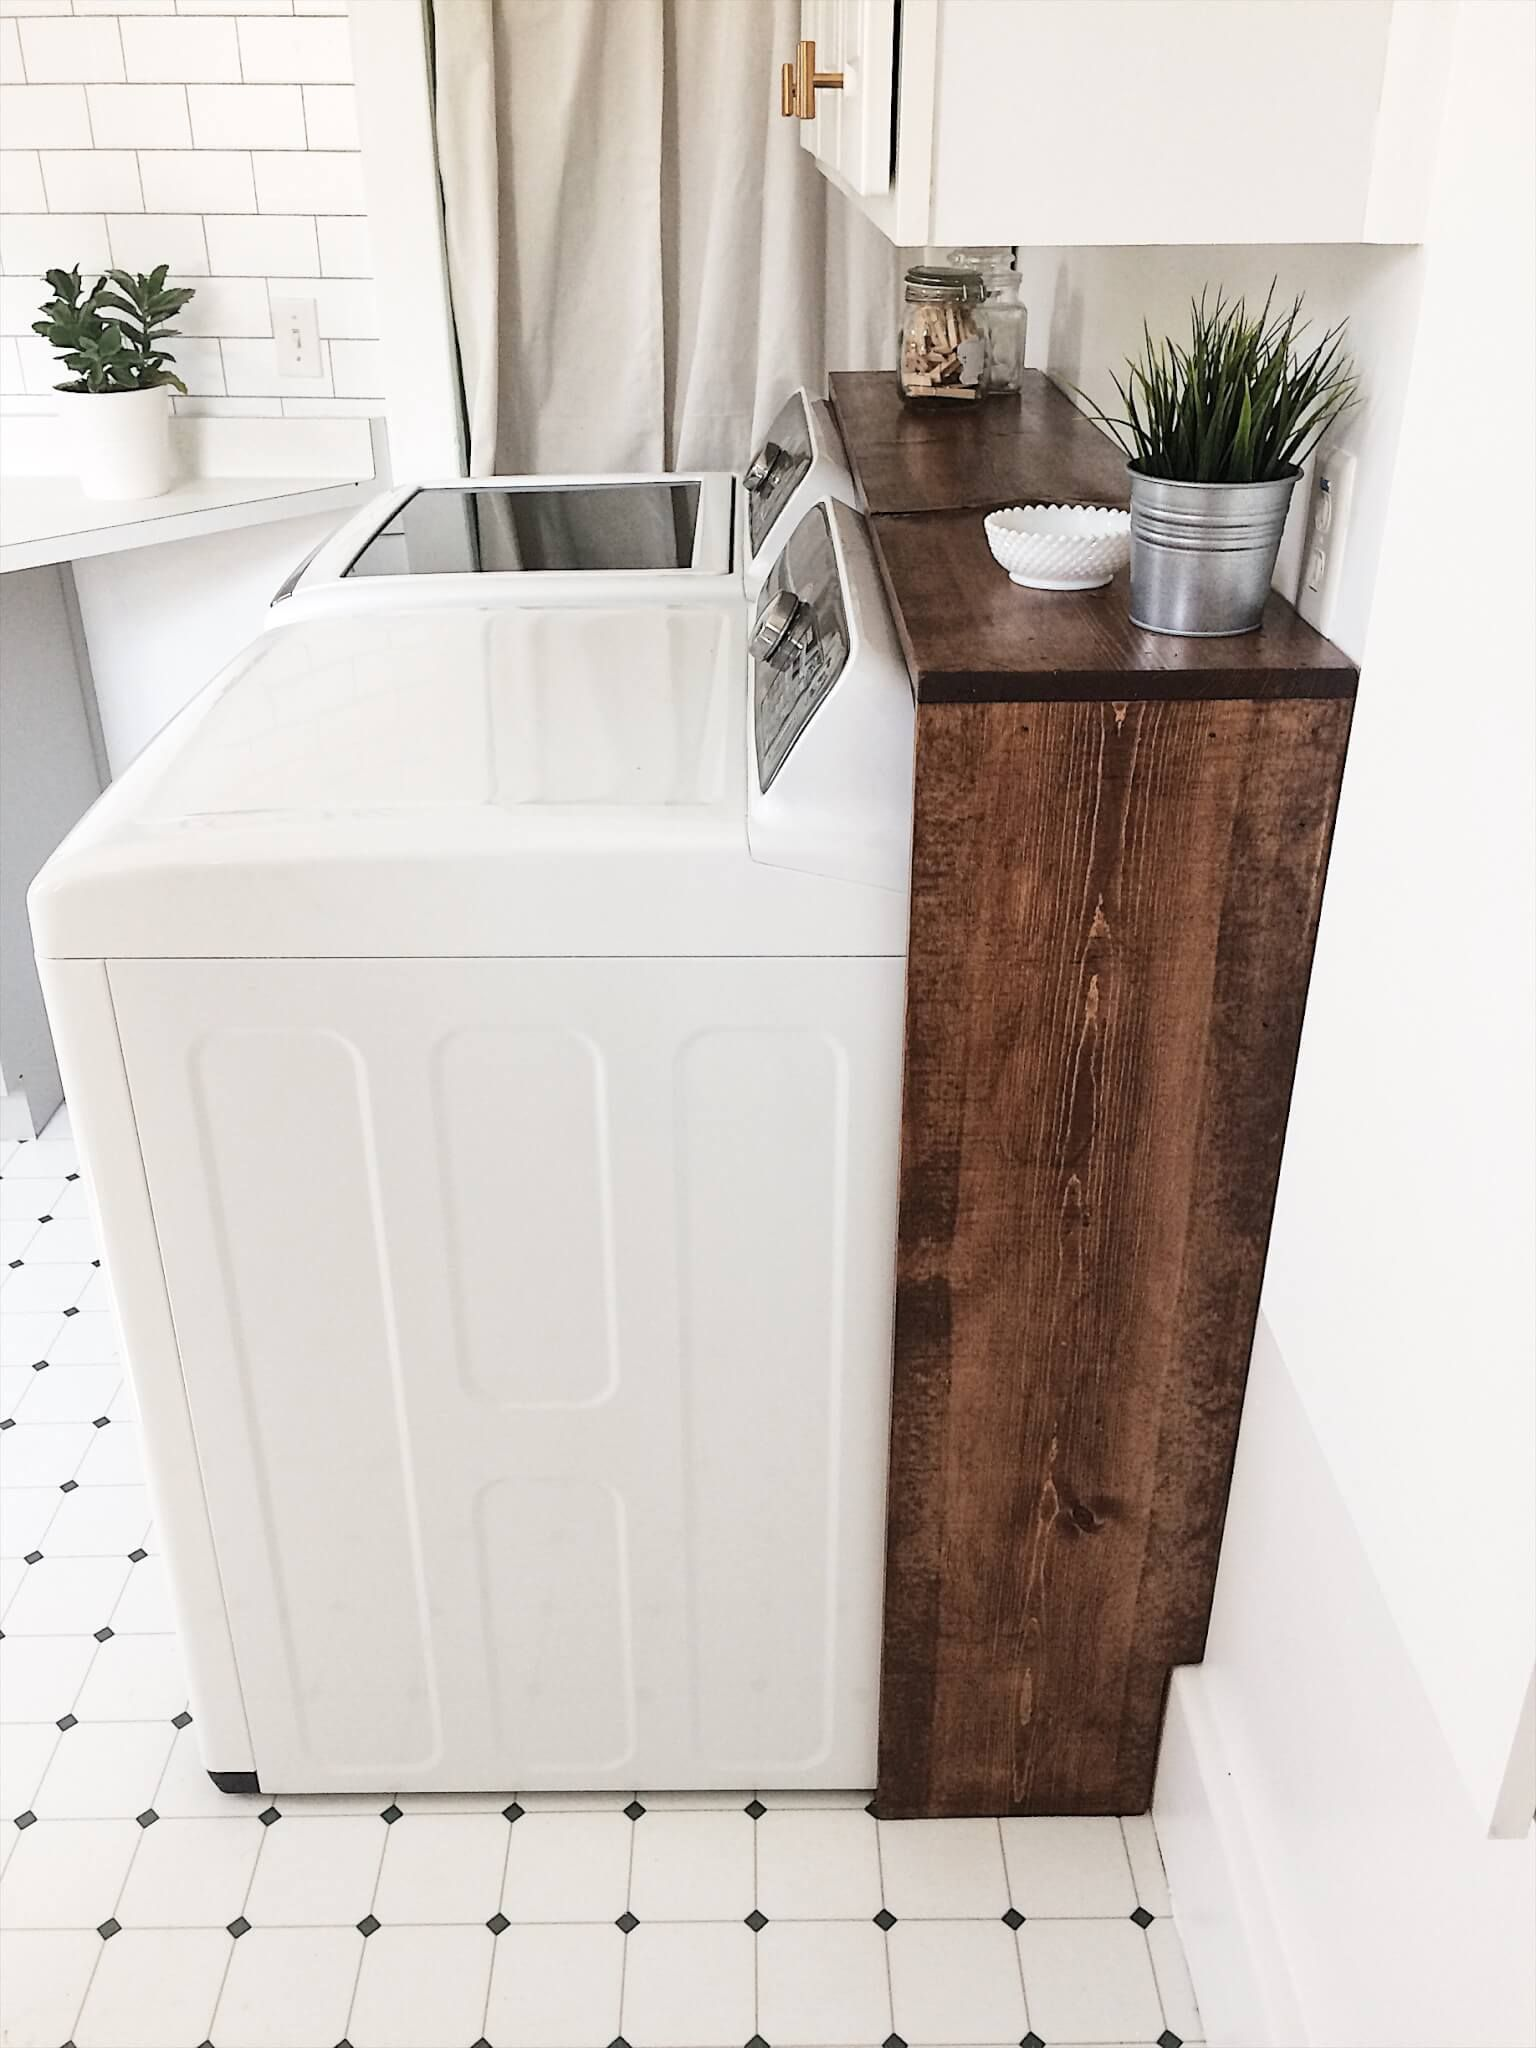 Laundry Room Shelf To Hide Plumbing And Wiresclever Clever Basement How Wire A Idea Wiring